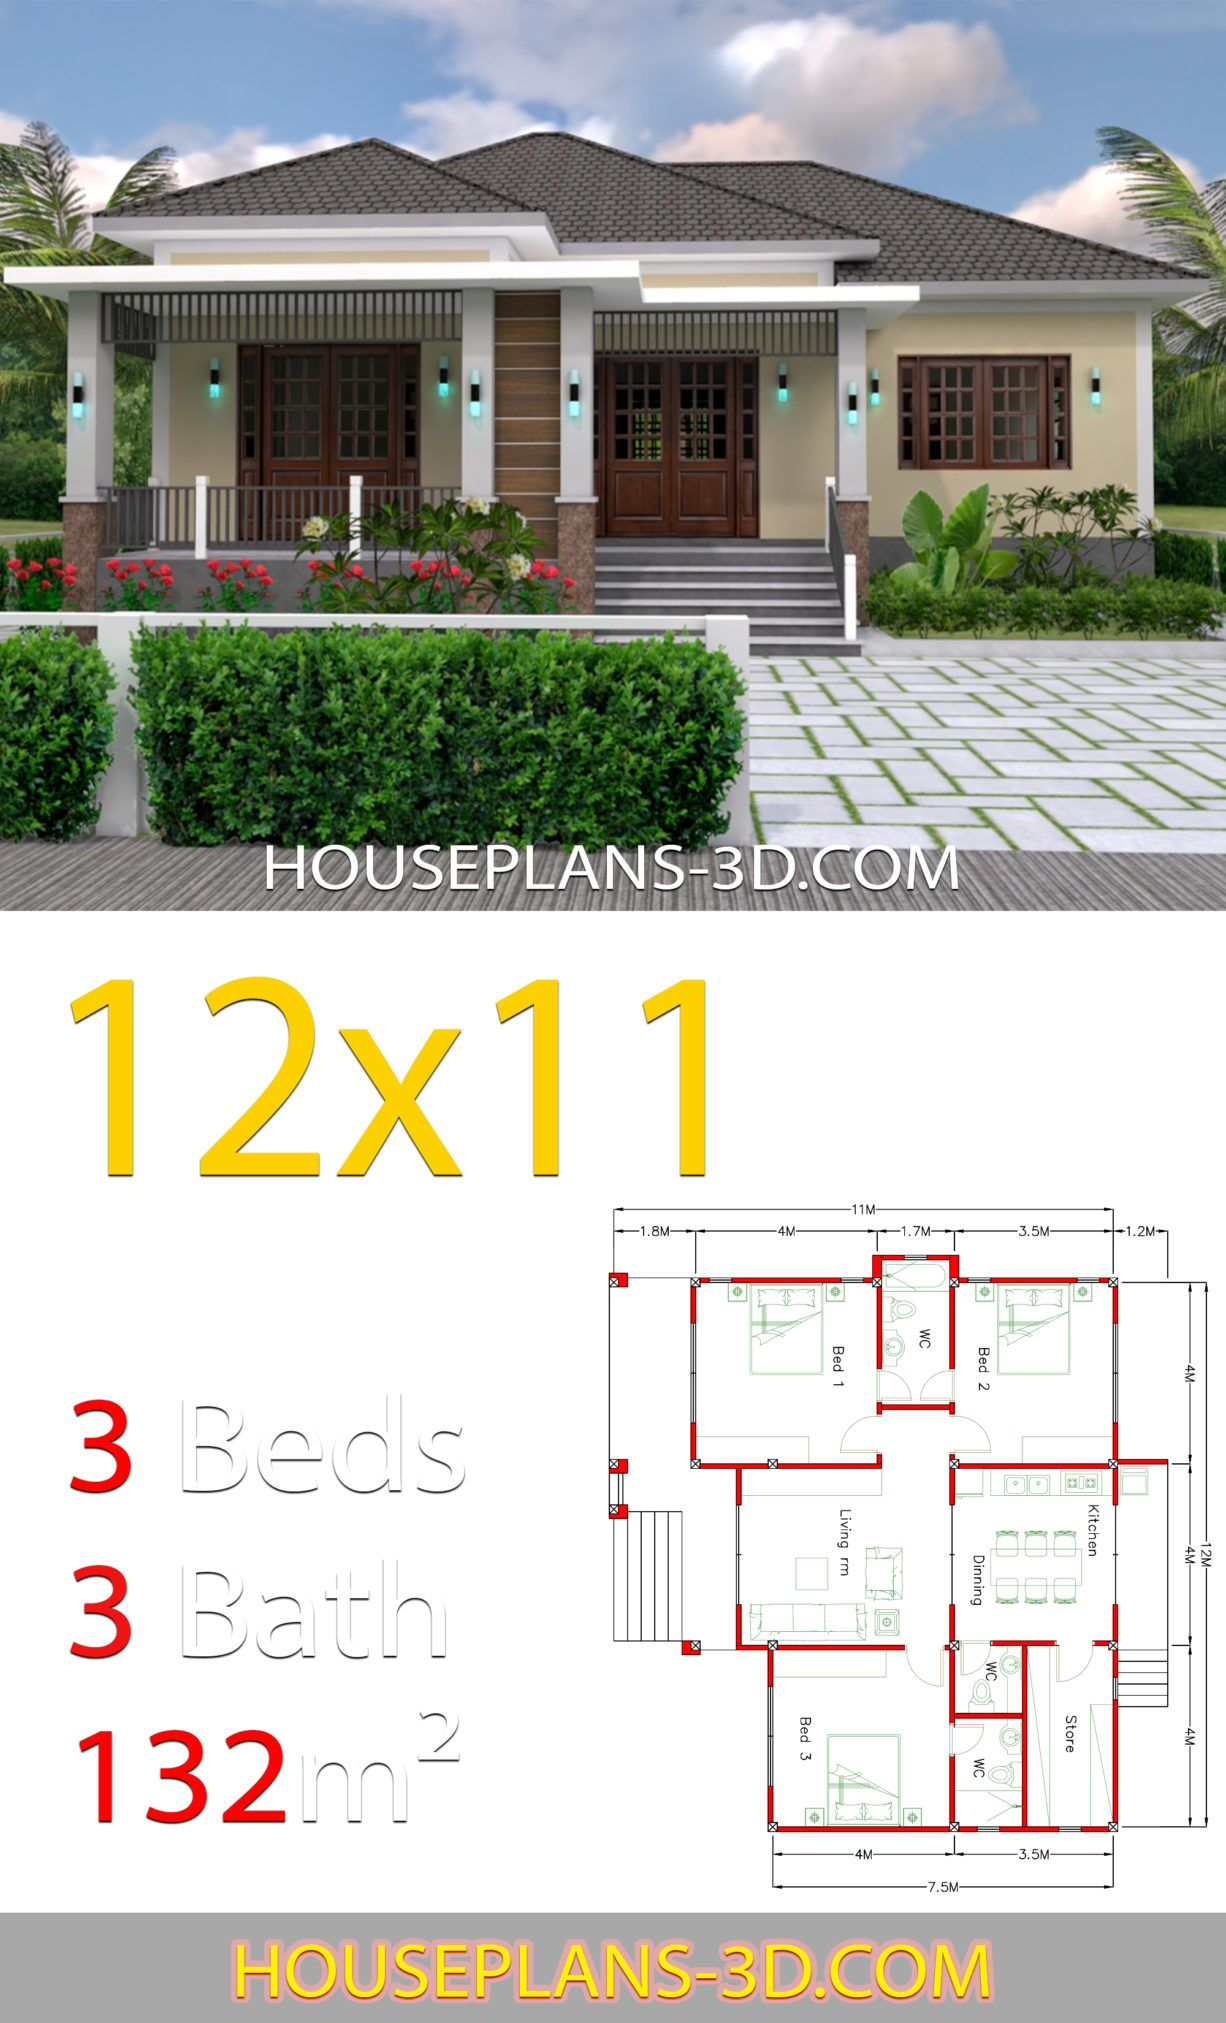 Home Design 12x11 With 3 Bedrooms Hip Roof House Plans 3d House Plans House Roof House Construction Plan